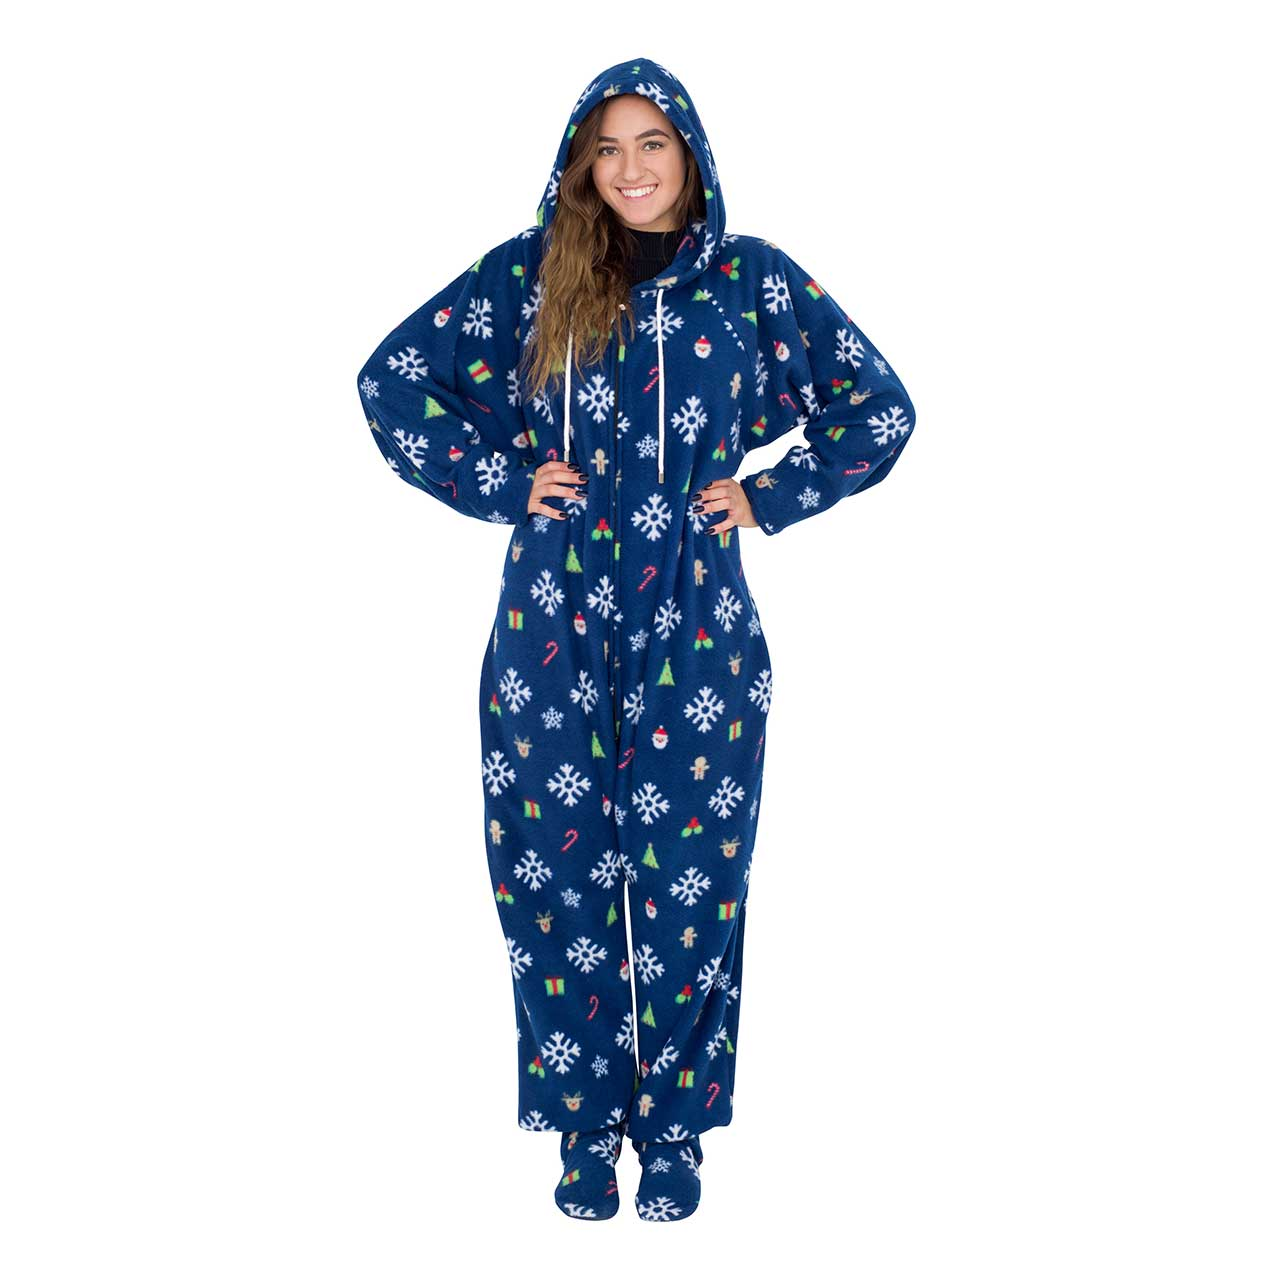 Snowflakes and Reindeer Navy Ugly Christmas Pajama Suit with Hood,Ugly Christmas Sweaters | Funny Xmas Sweaters for Men and Women